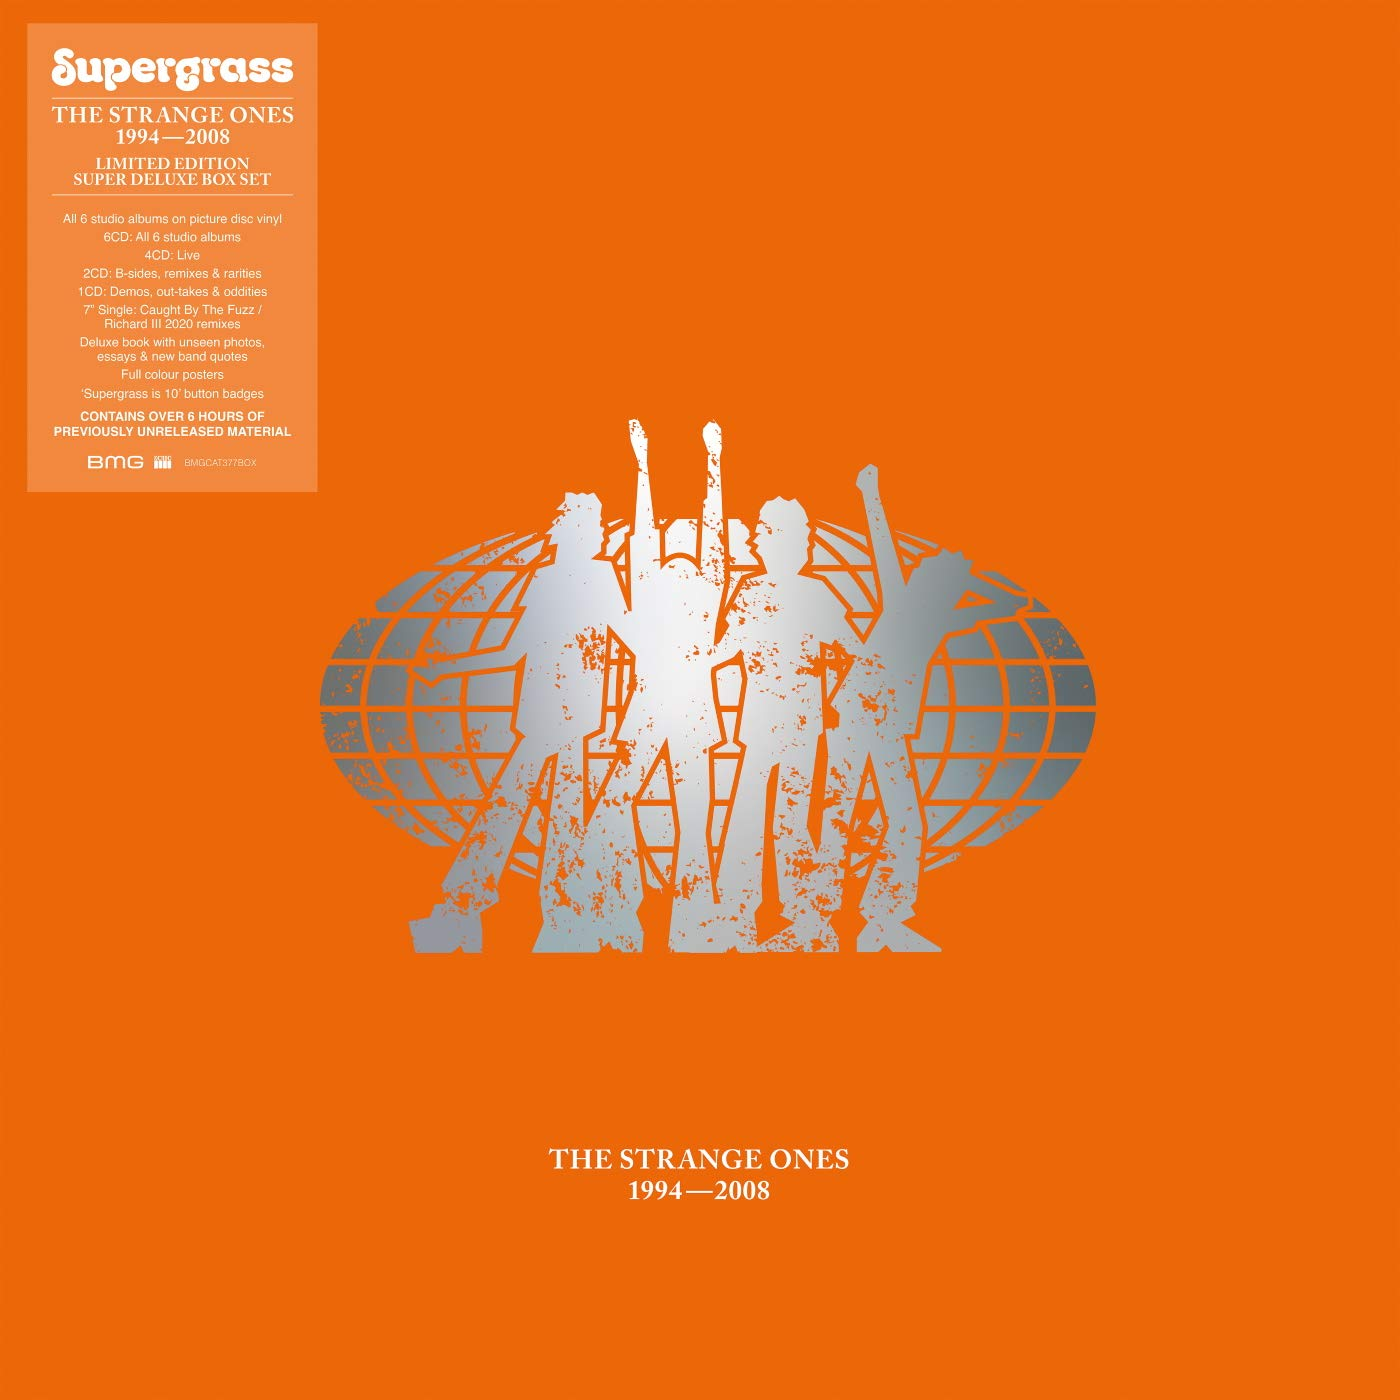 Supergrass - The Strange Ones 1994-2008 (2020) [FLAC] Download